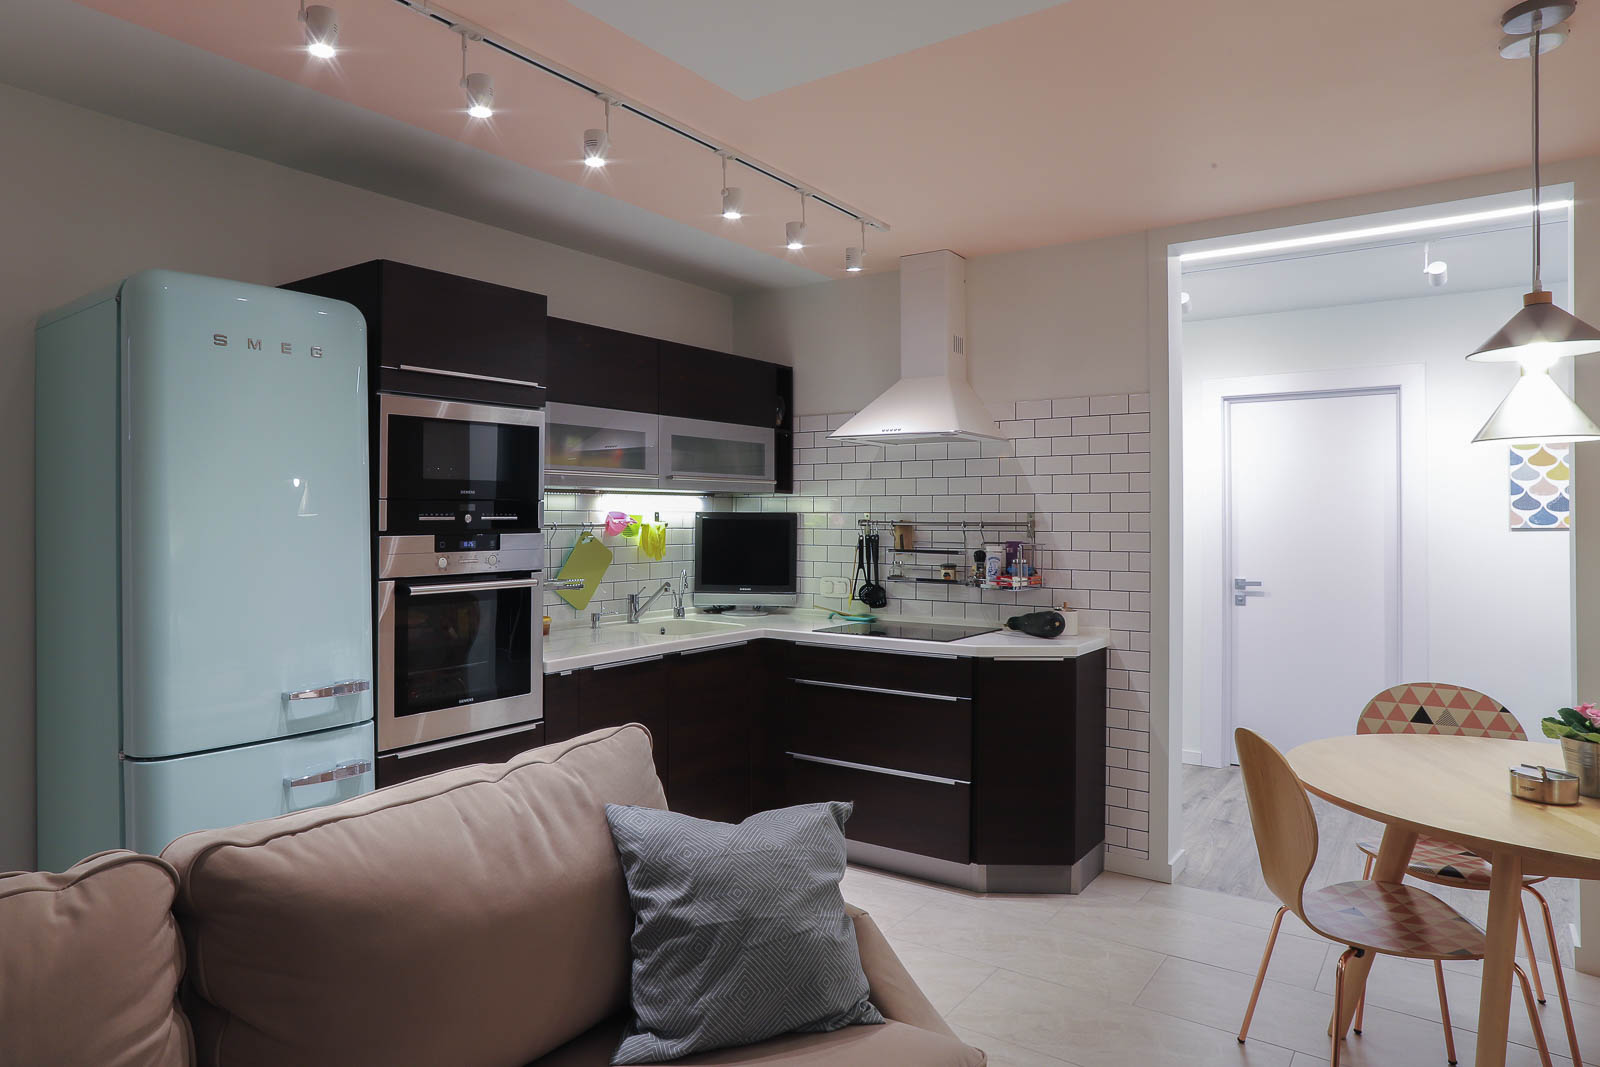 Kitchen with smeg fridge